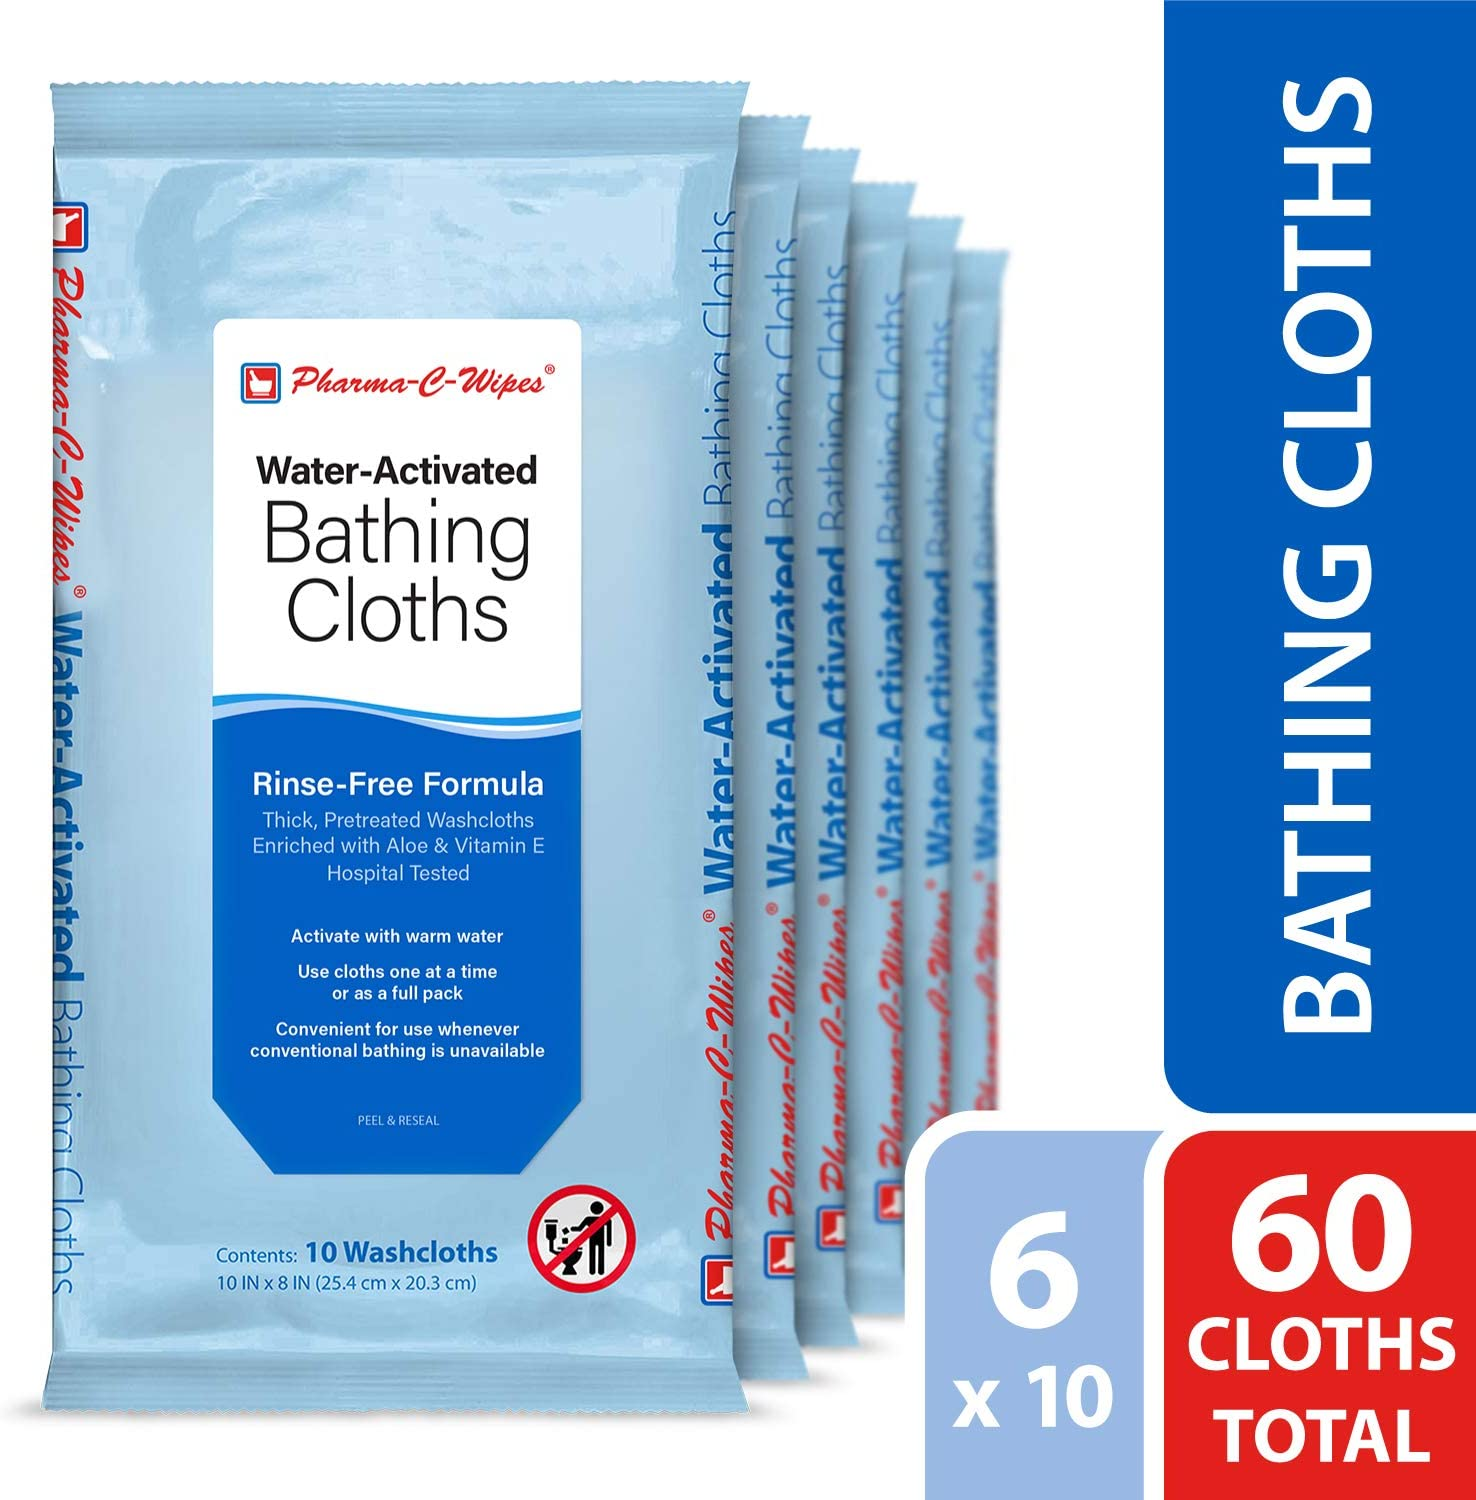 Pharma-C-Wipes Water Activated Bathing Cloths - Rinse Free - Thick, Pretreated Washcloths (6 Packs of 10 Wipes)